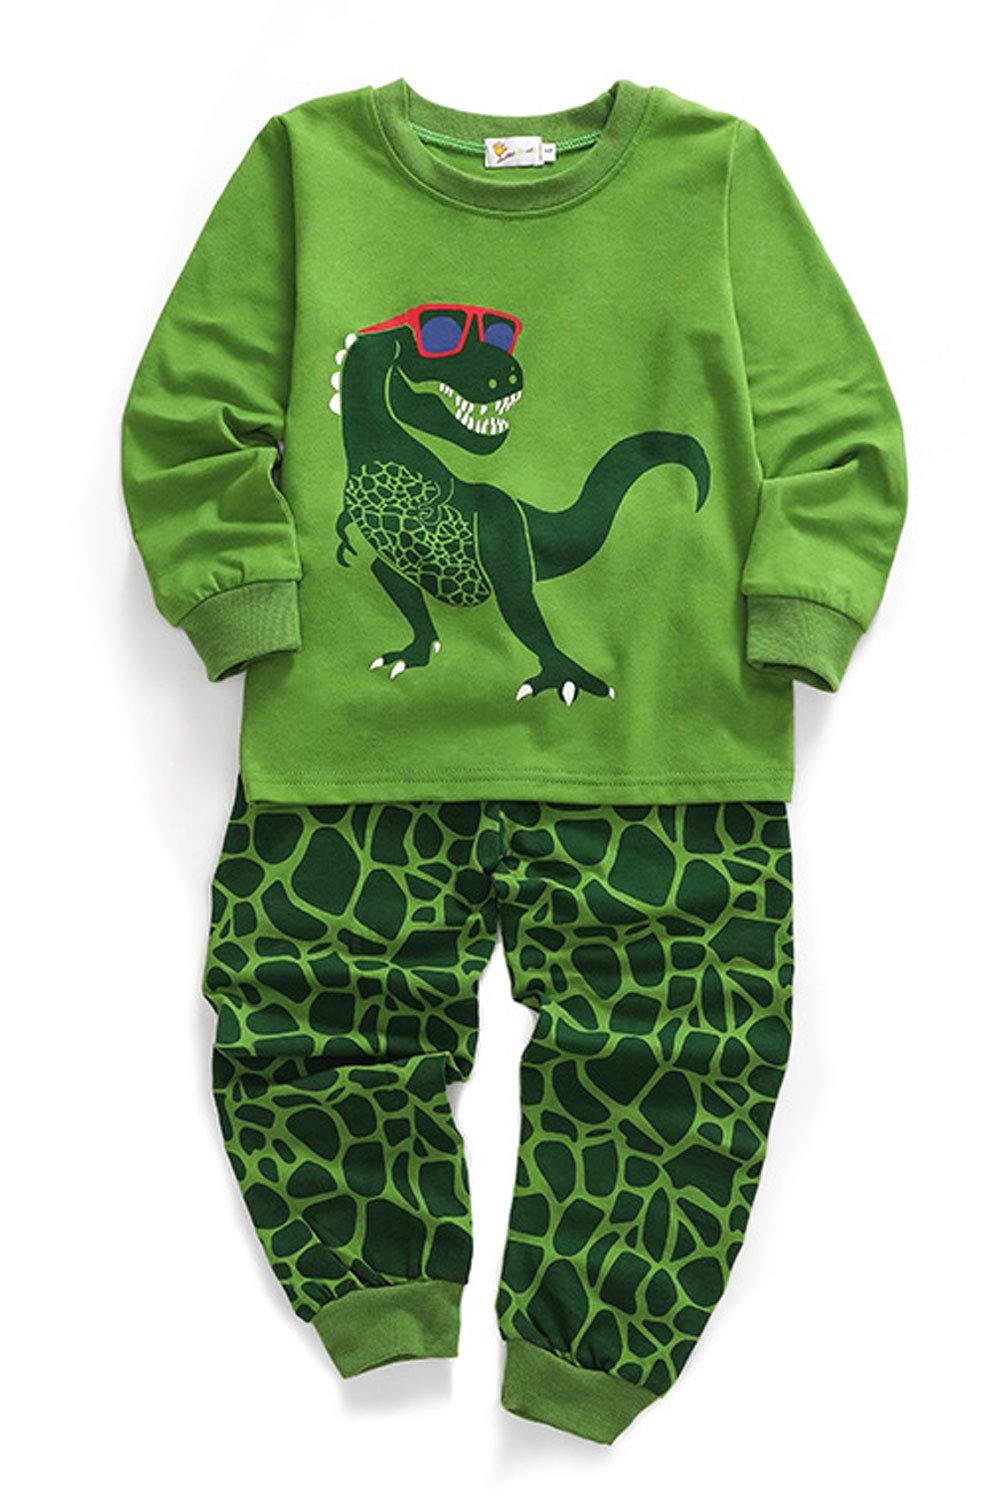 Unomatch Kids Boys Comfortable Graphic Two Piece Outfit (8, Green)